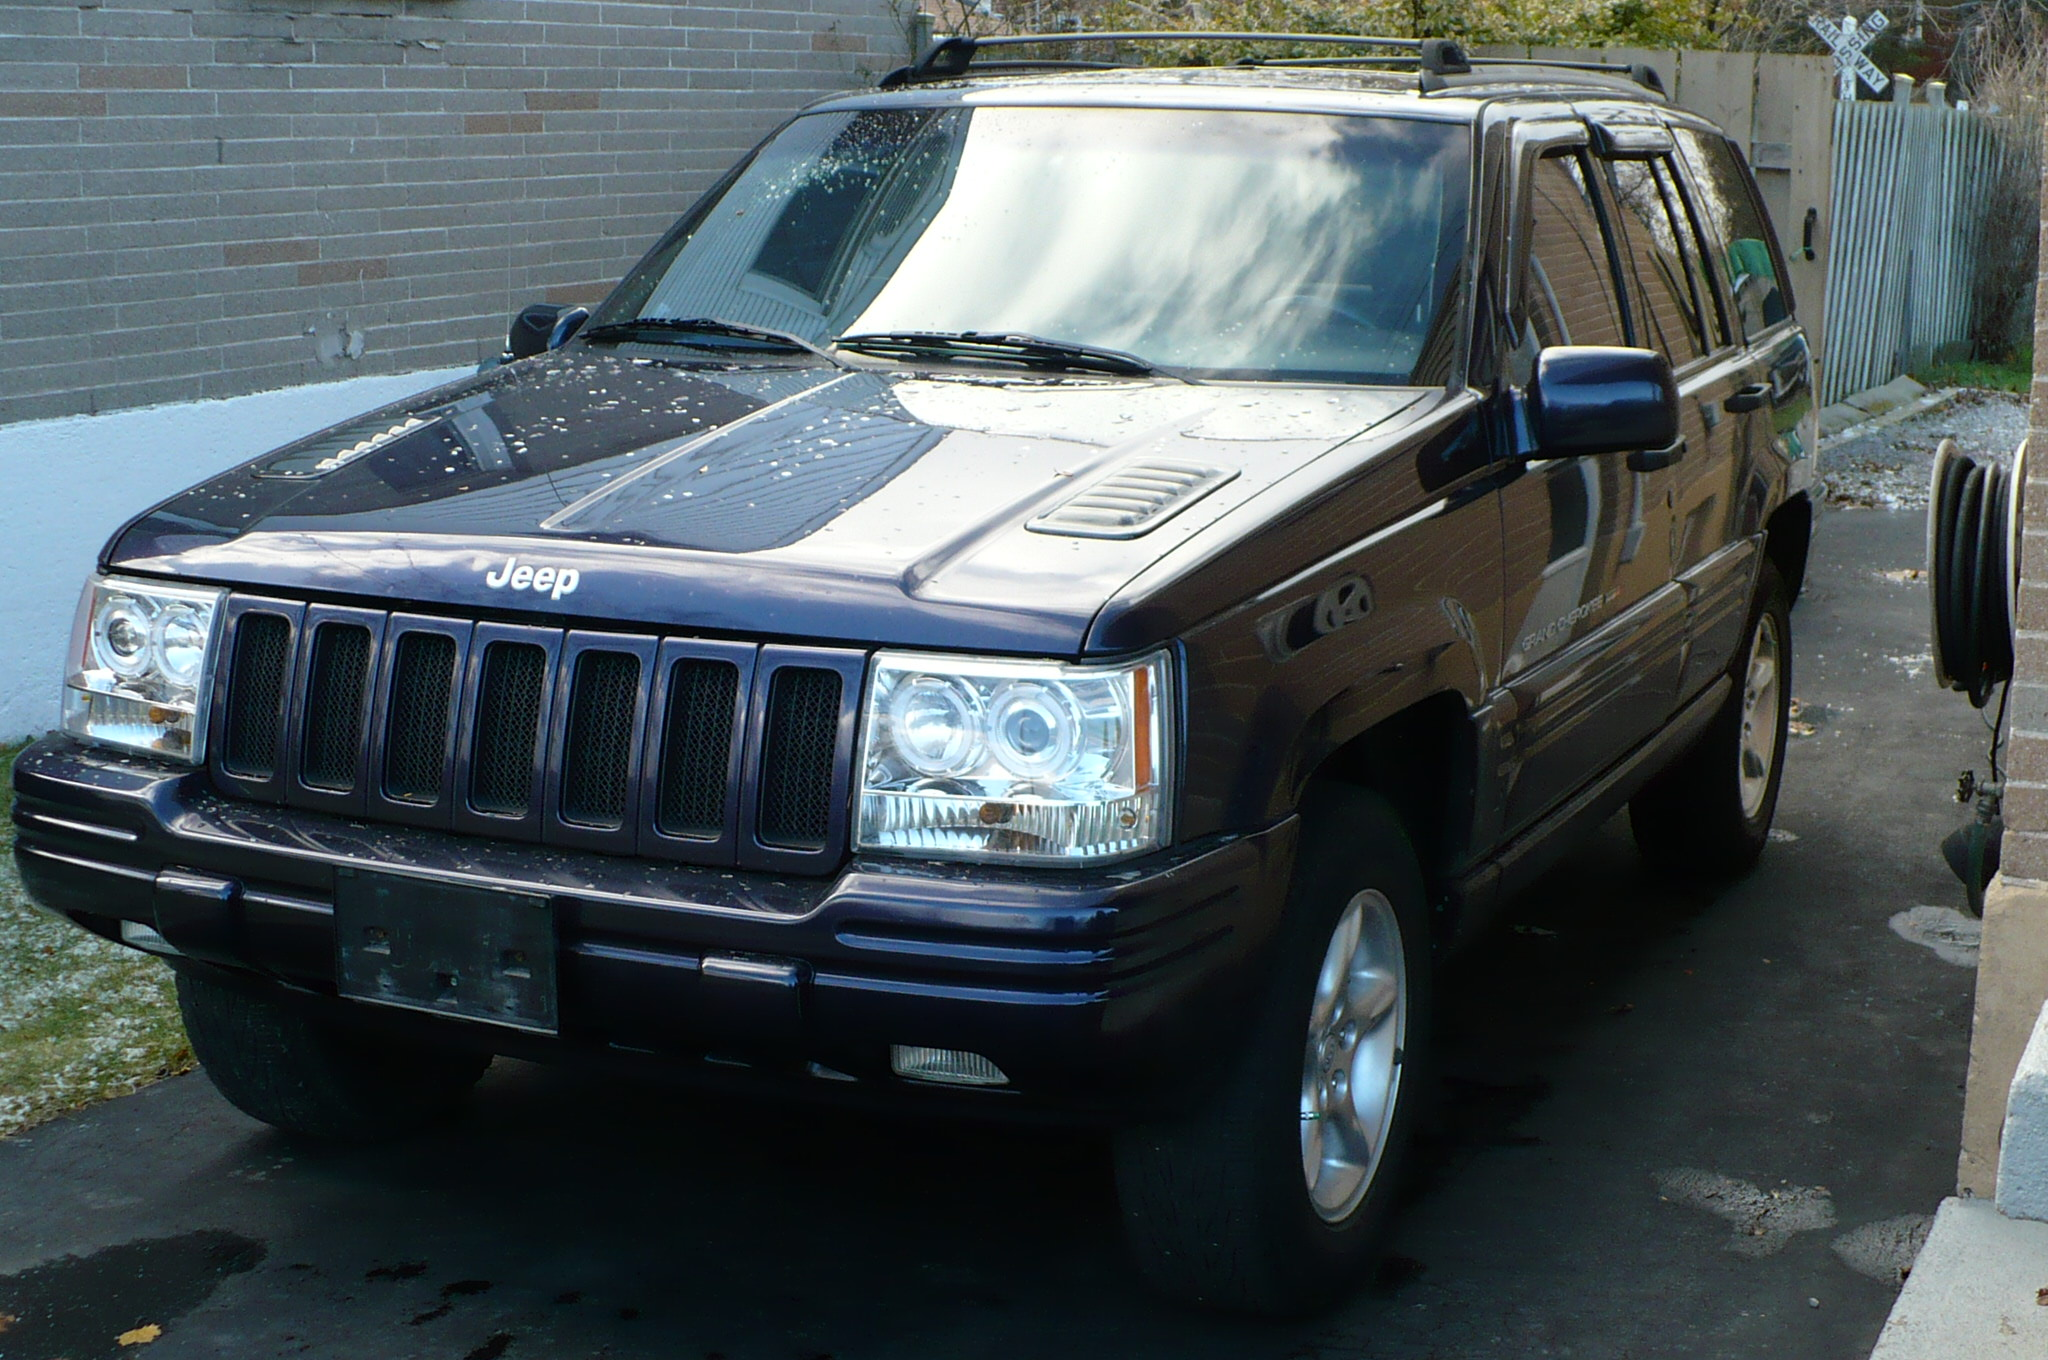 gillster6's 1998 Jeep Grand Cherokee